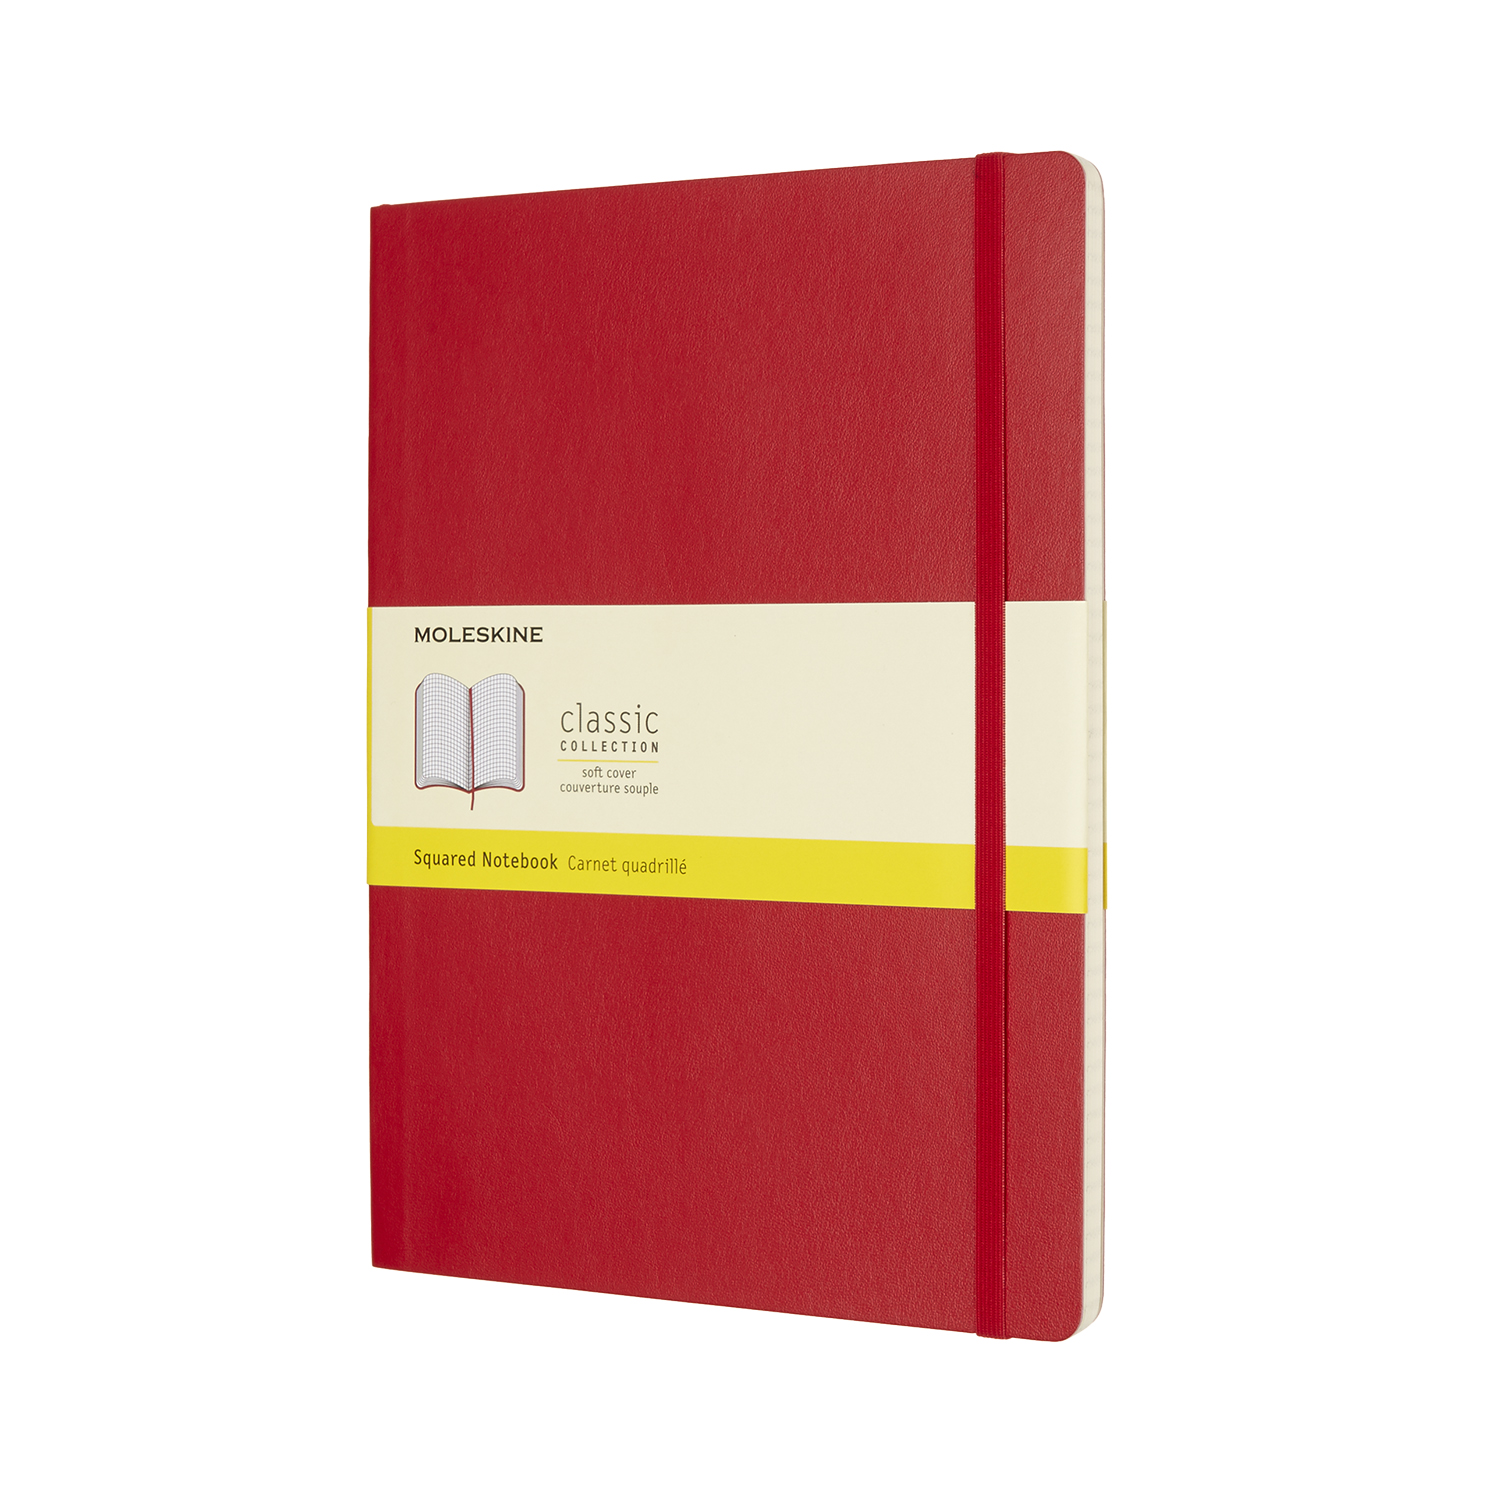 Scarlet Red Extra Large Squared Soft Notebook